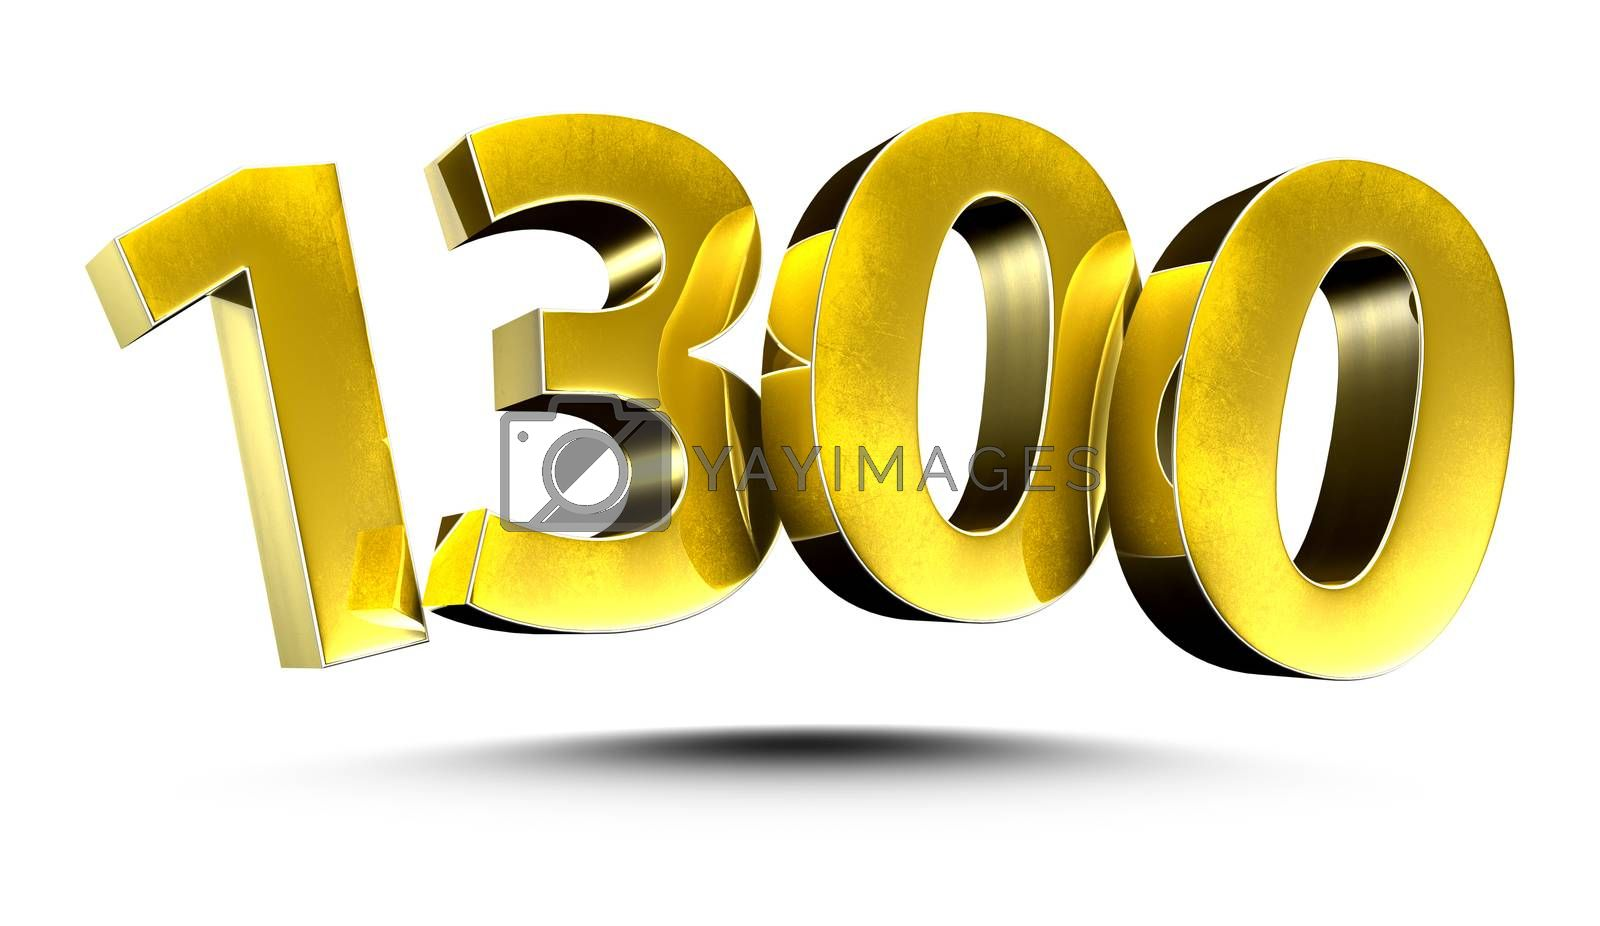 3D illustration Numbers 1300 Gold isolated on a white background.(with Clipping Path)